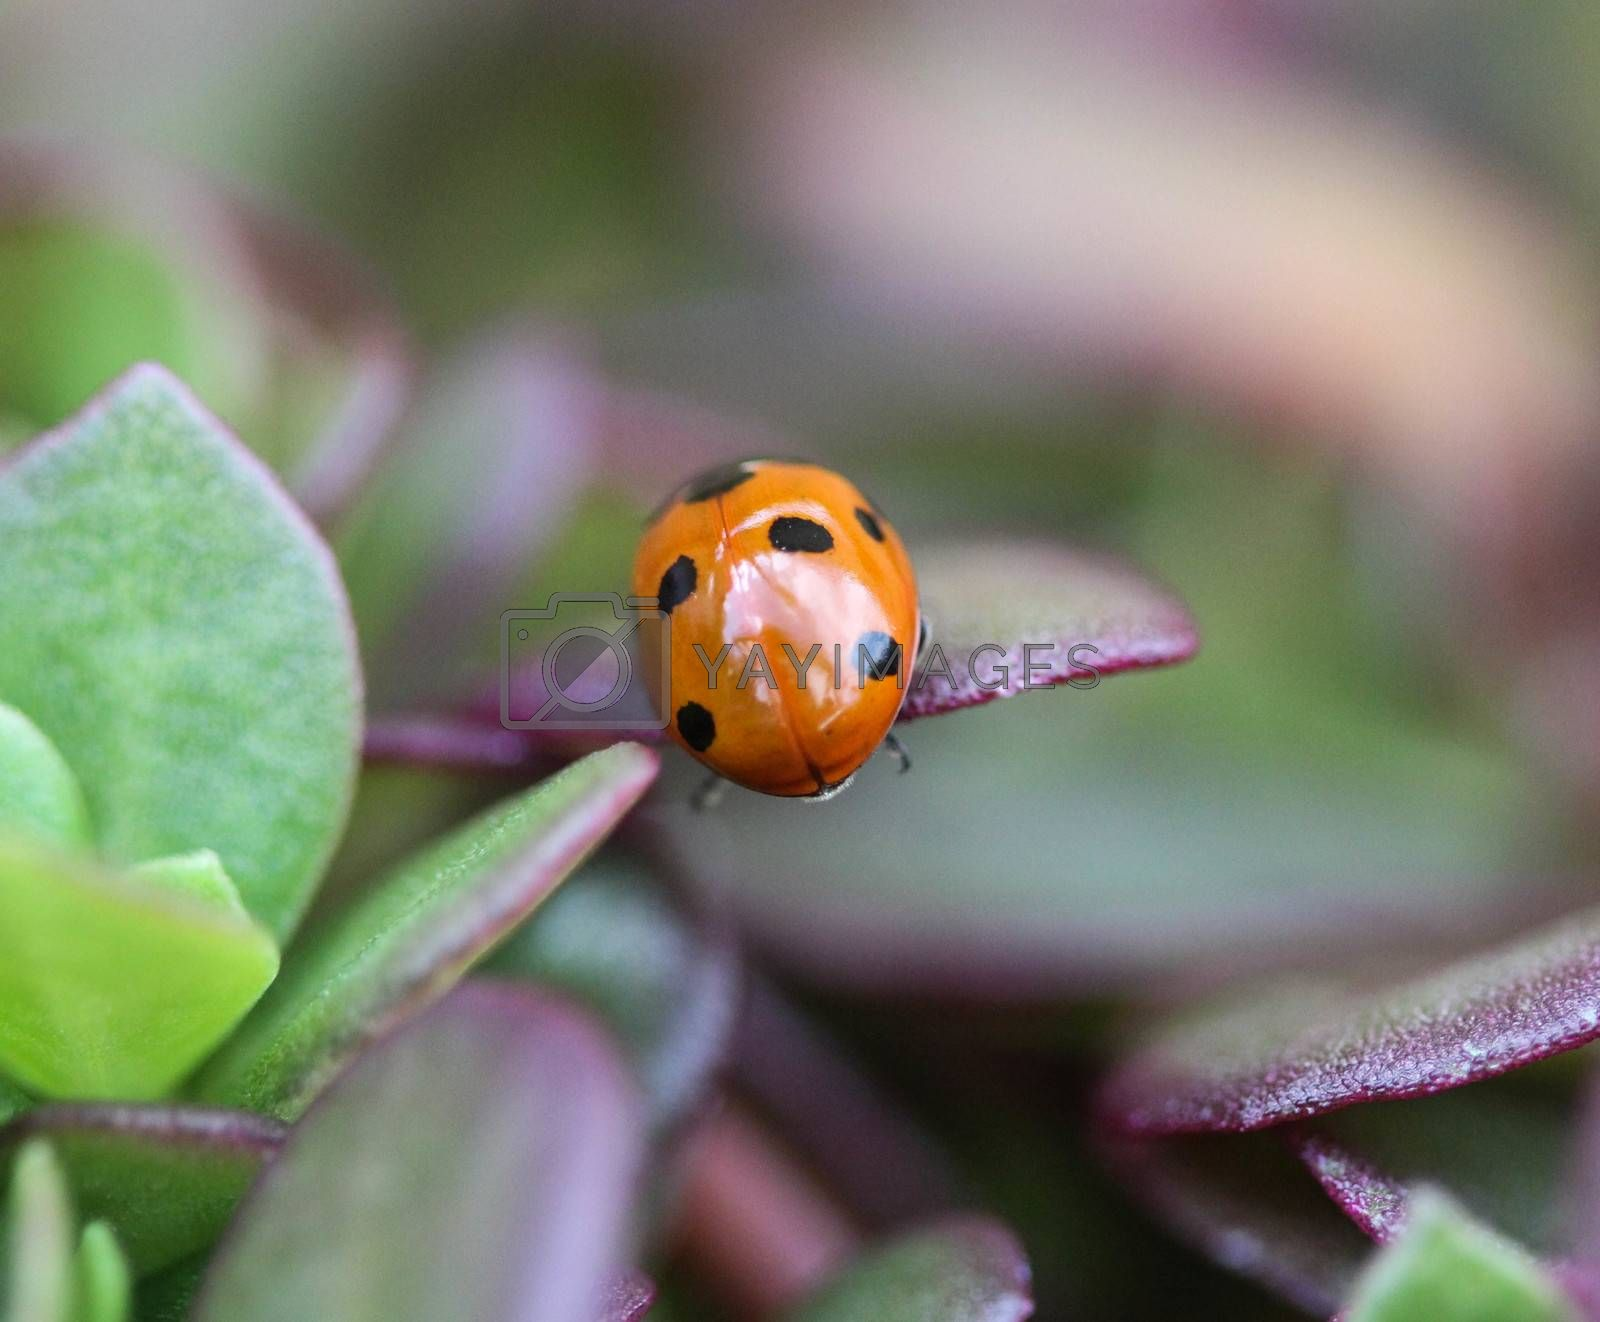 Royalty free image of Coccinella septempunctata, the seven-spot ladybird, the most common Ladybug in Europe by michaelmeijer